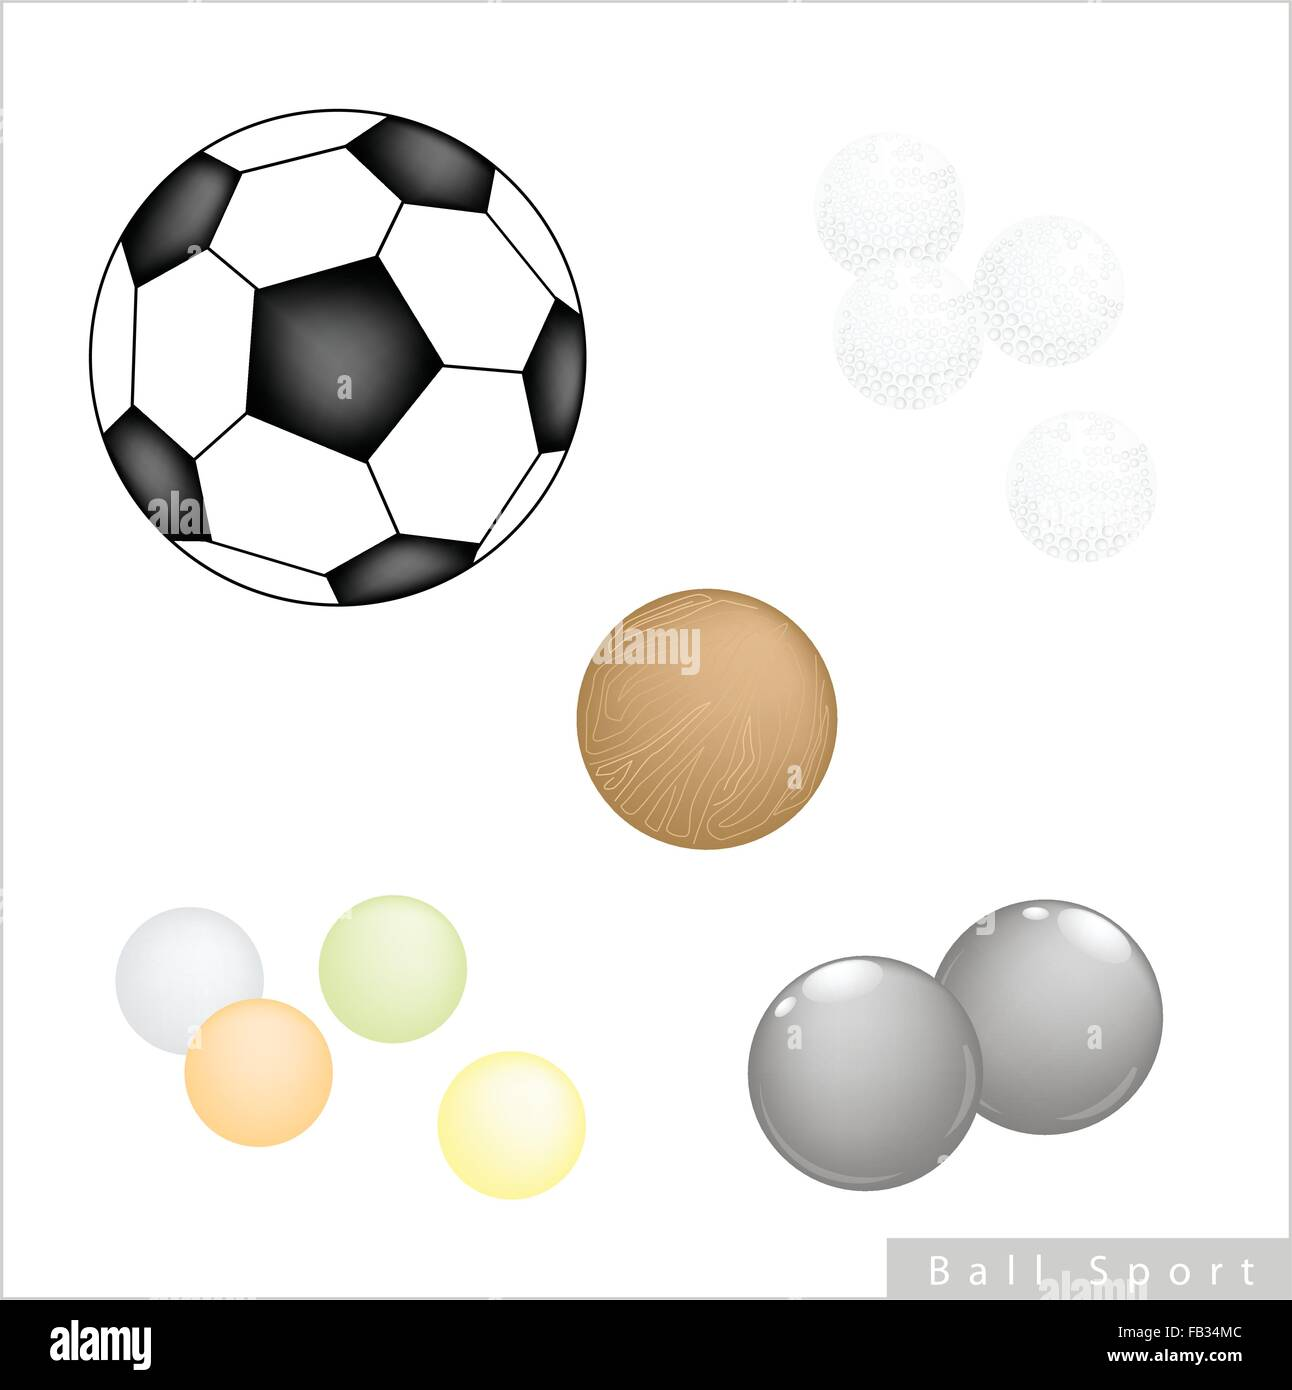 sport items illustration collection of 5 assorted balls football golf FB34MC sport items, illustration collection of 5 assorted balls, football